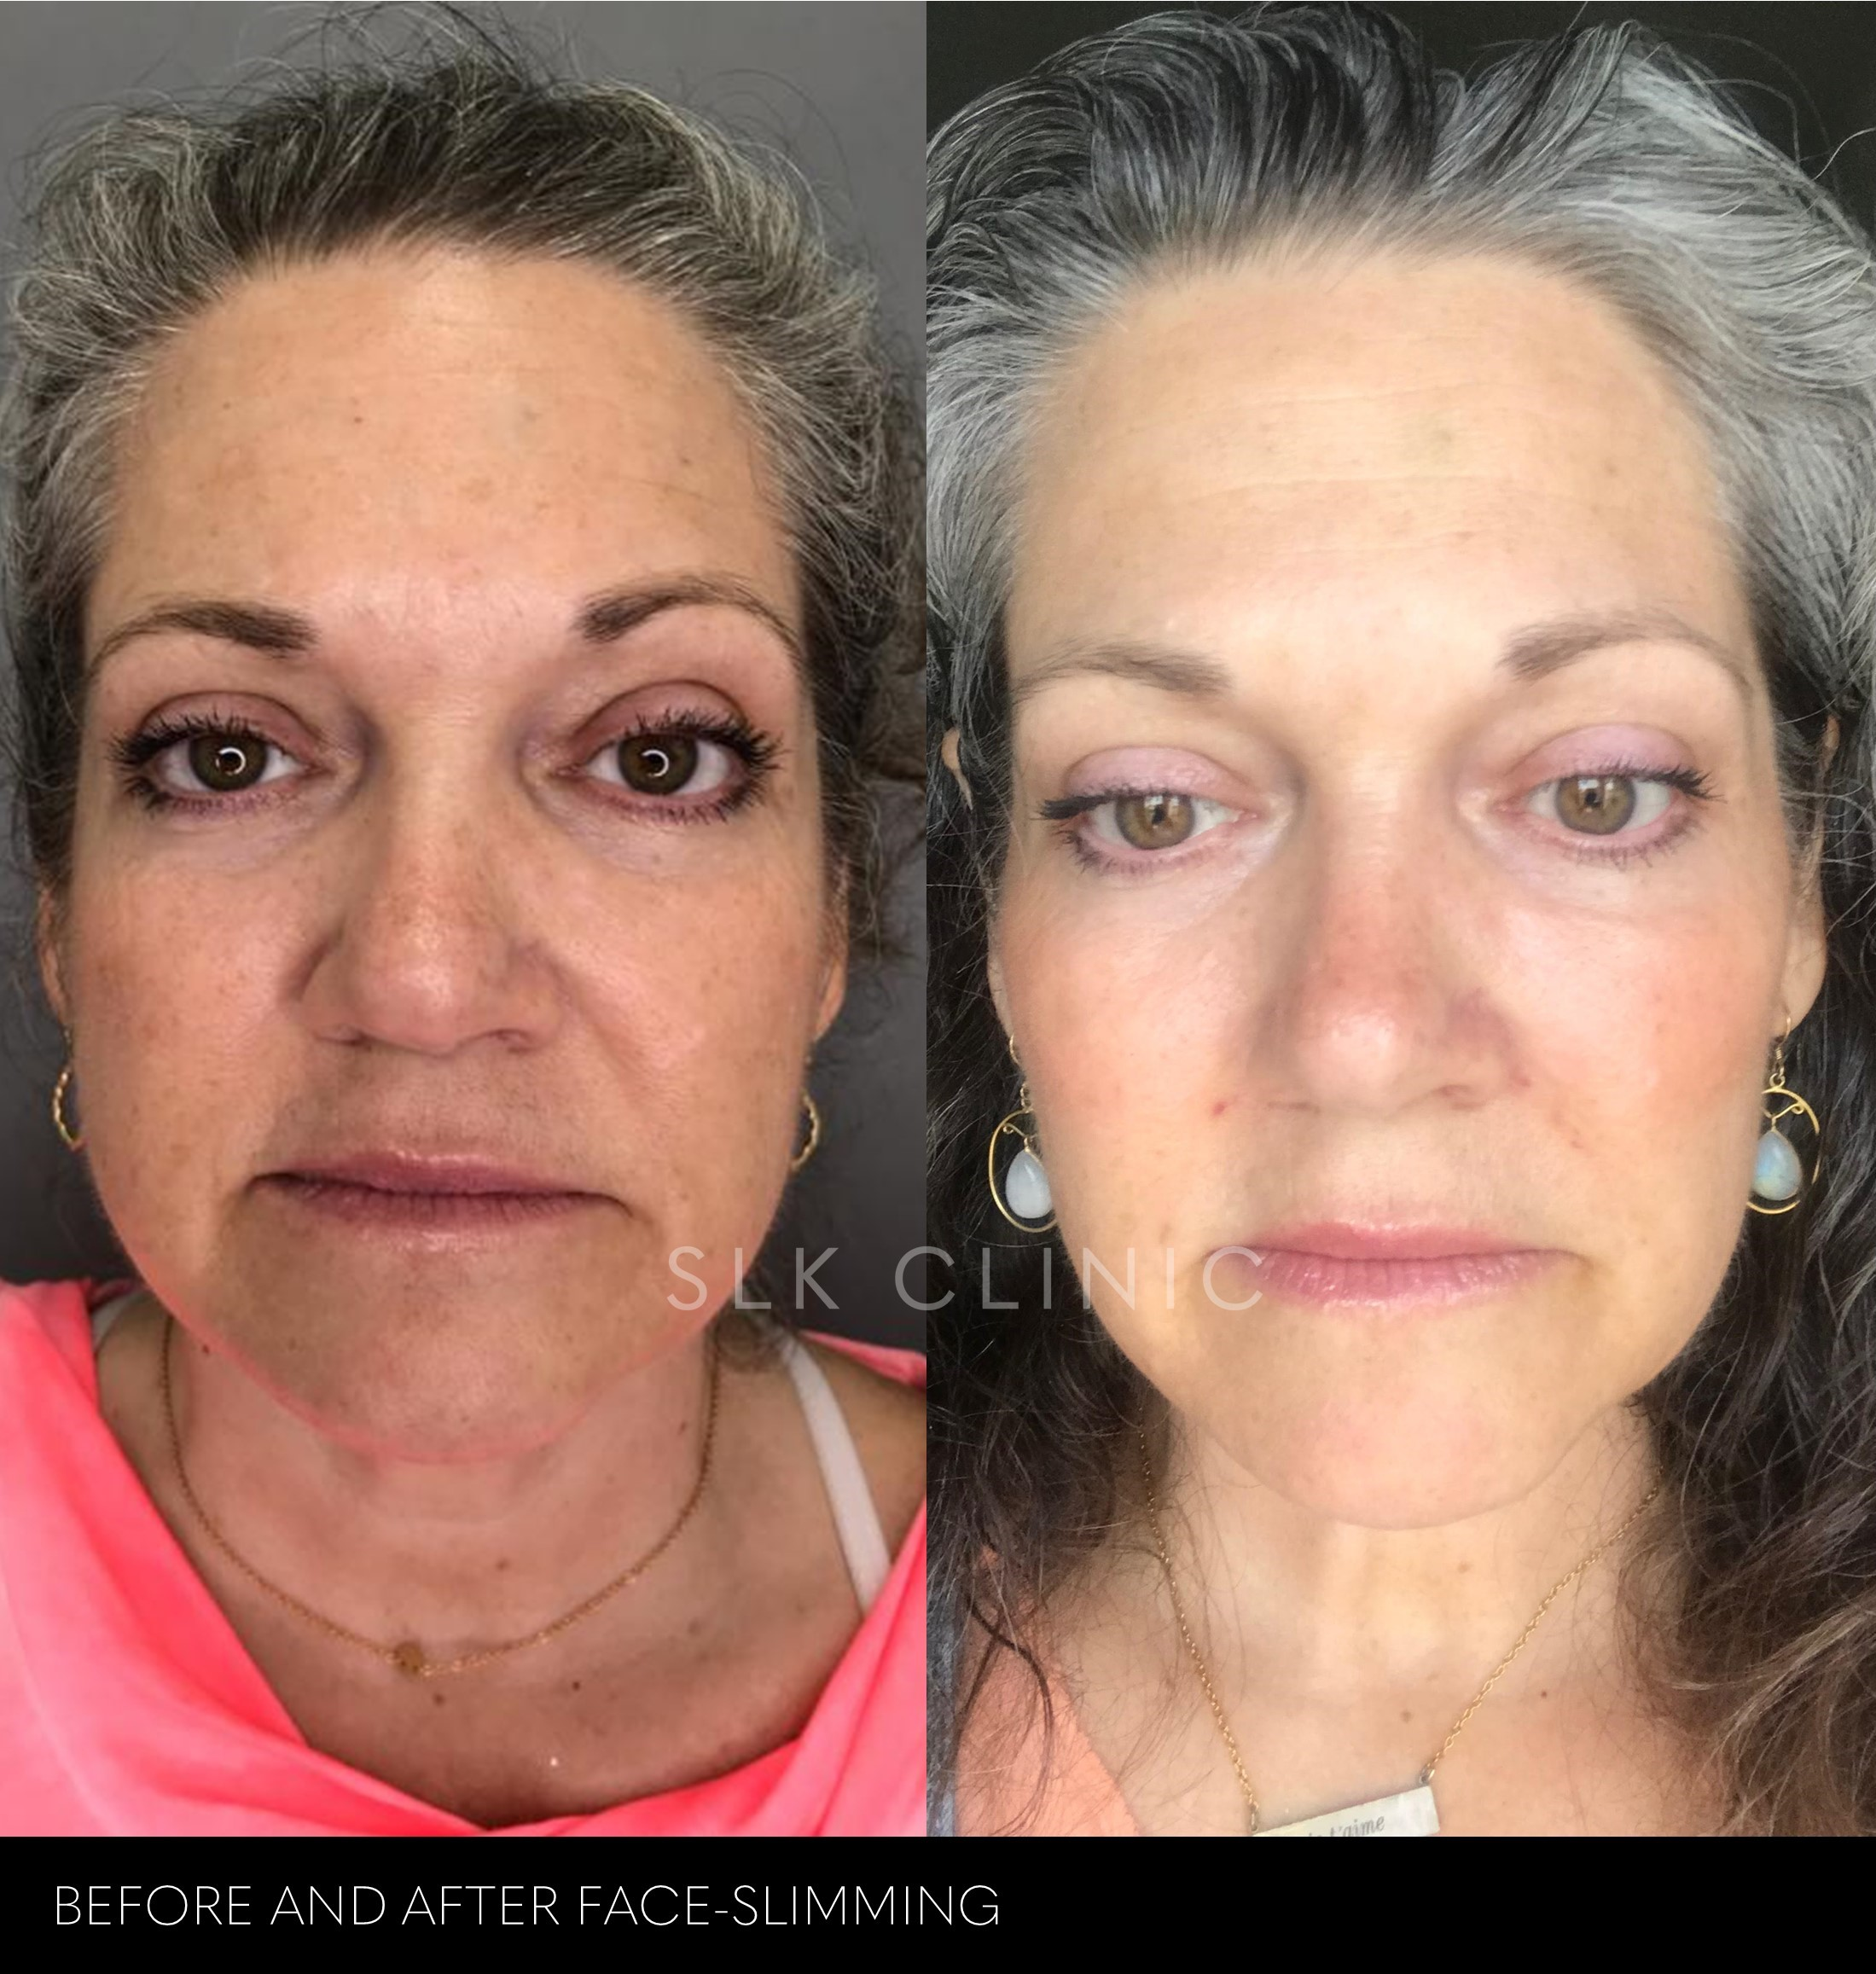 before and after face slimming and neck tightening procedures in our Nashville Clinic for a woman in her 50s